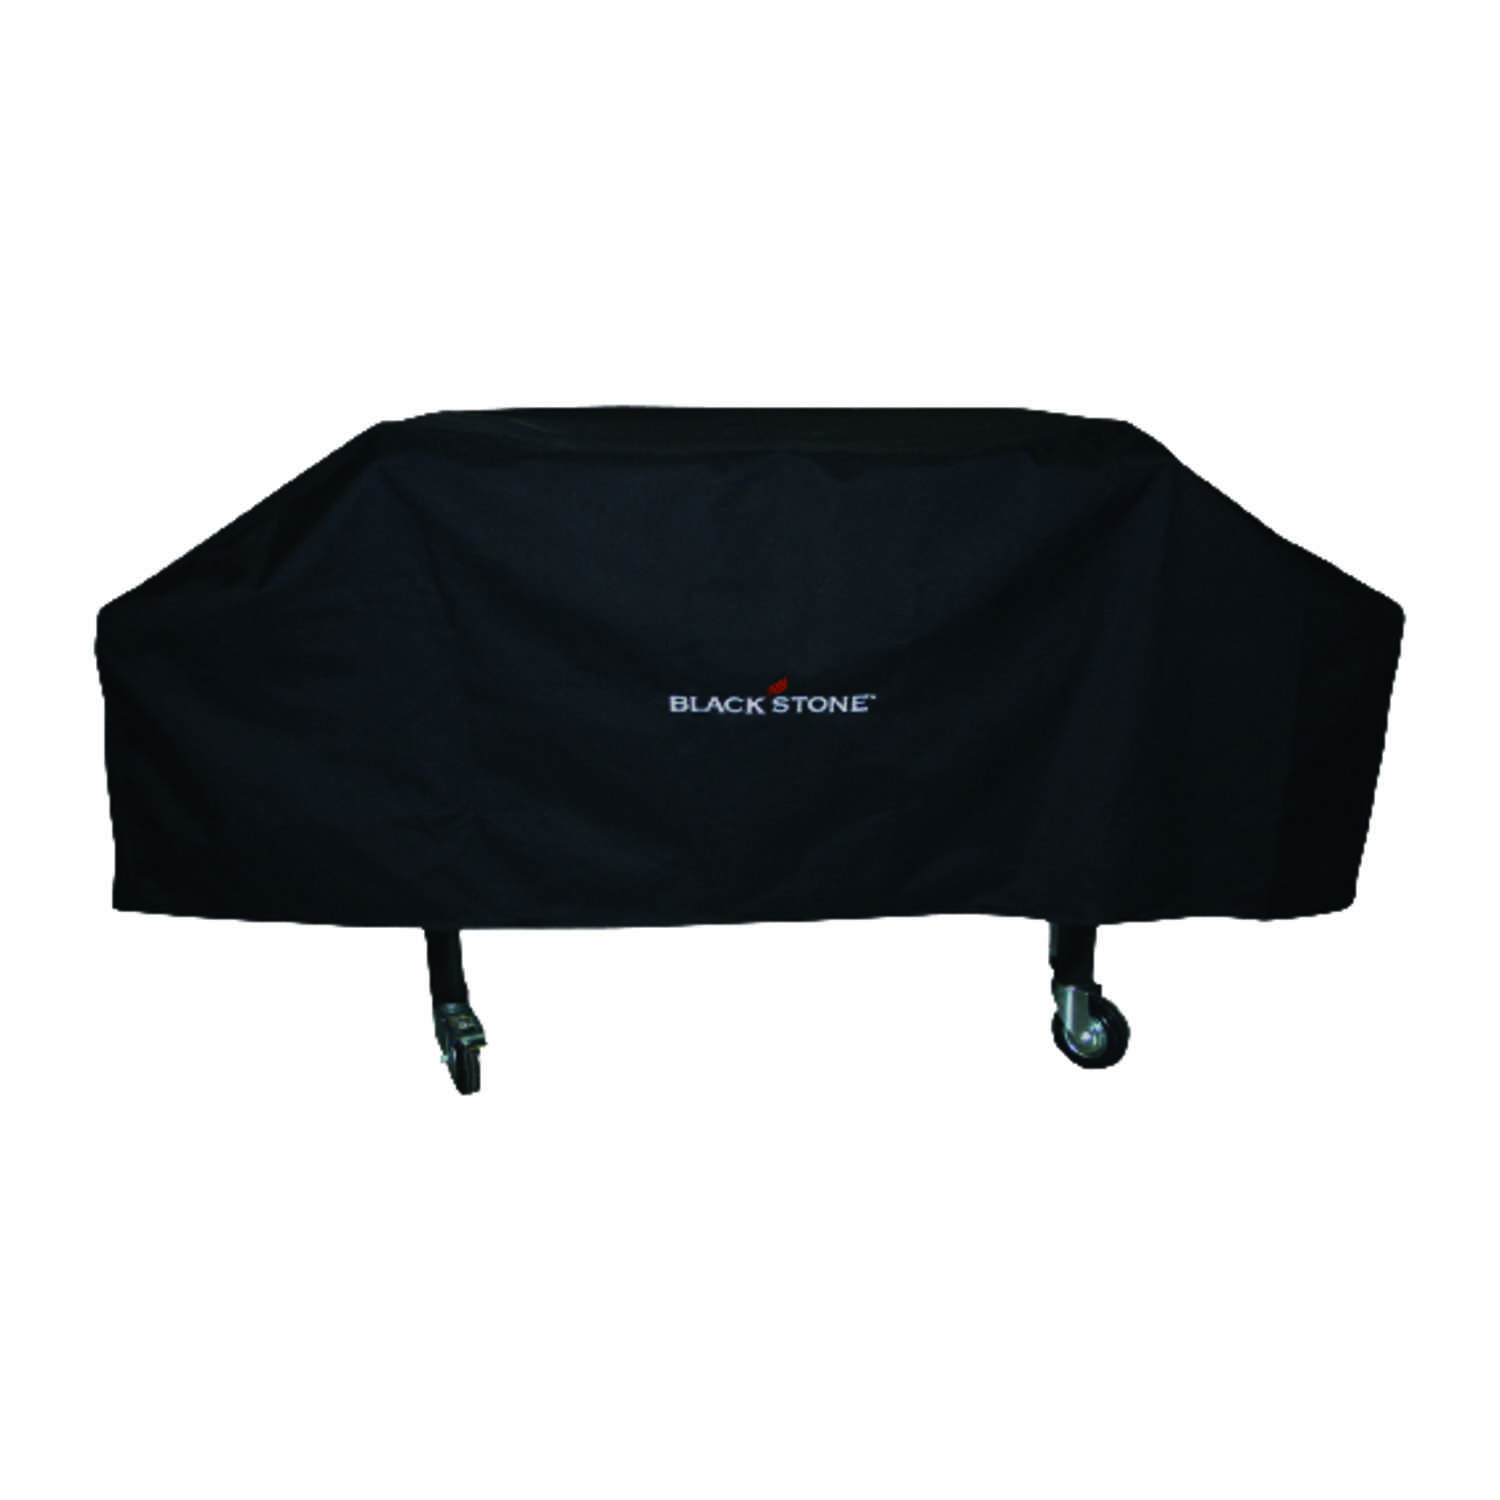 Blackstone  Black  Griddle Station Cover  22.5 in. W x 66.5 in. D x 26 in. H For Fits Blackstone 36